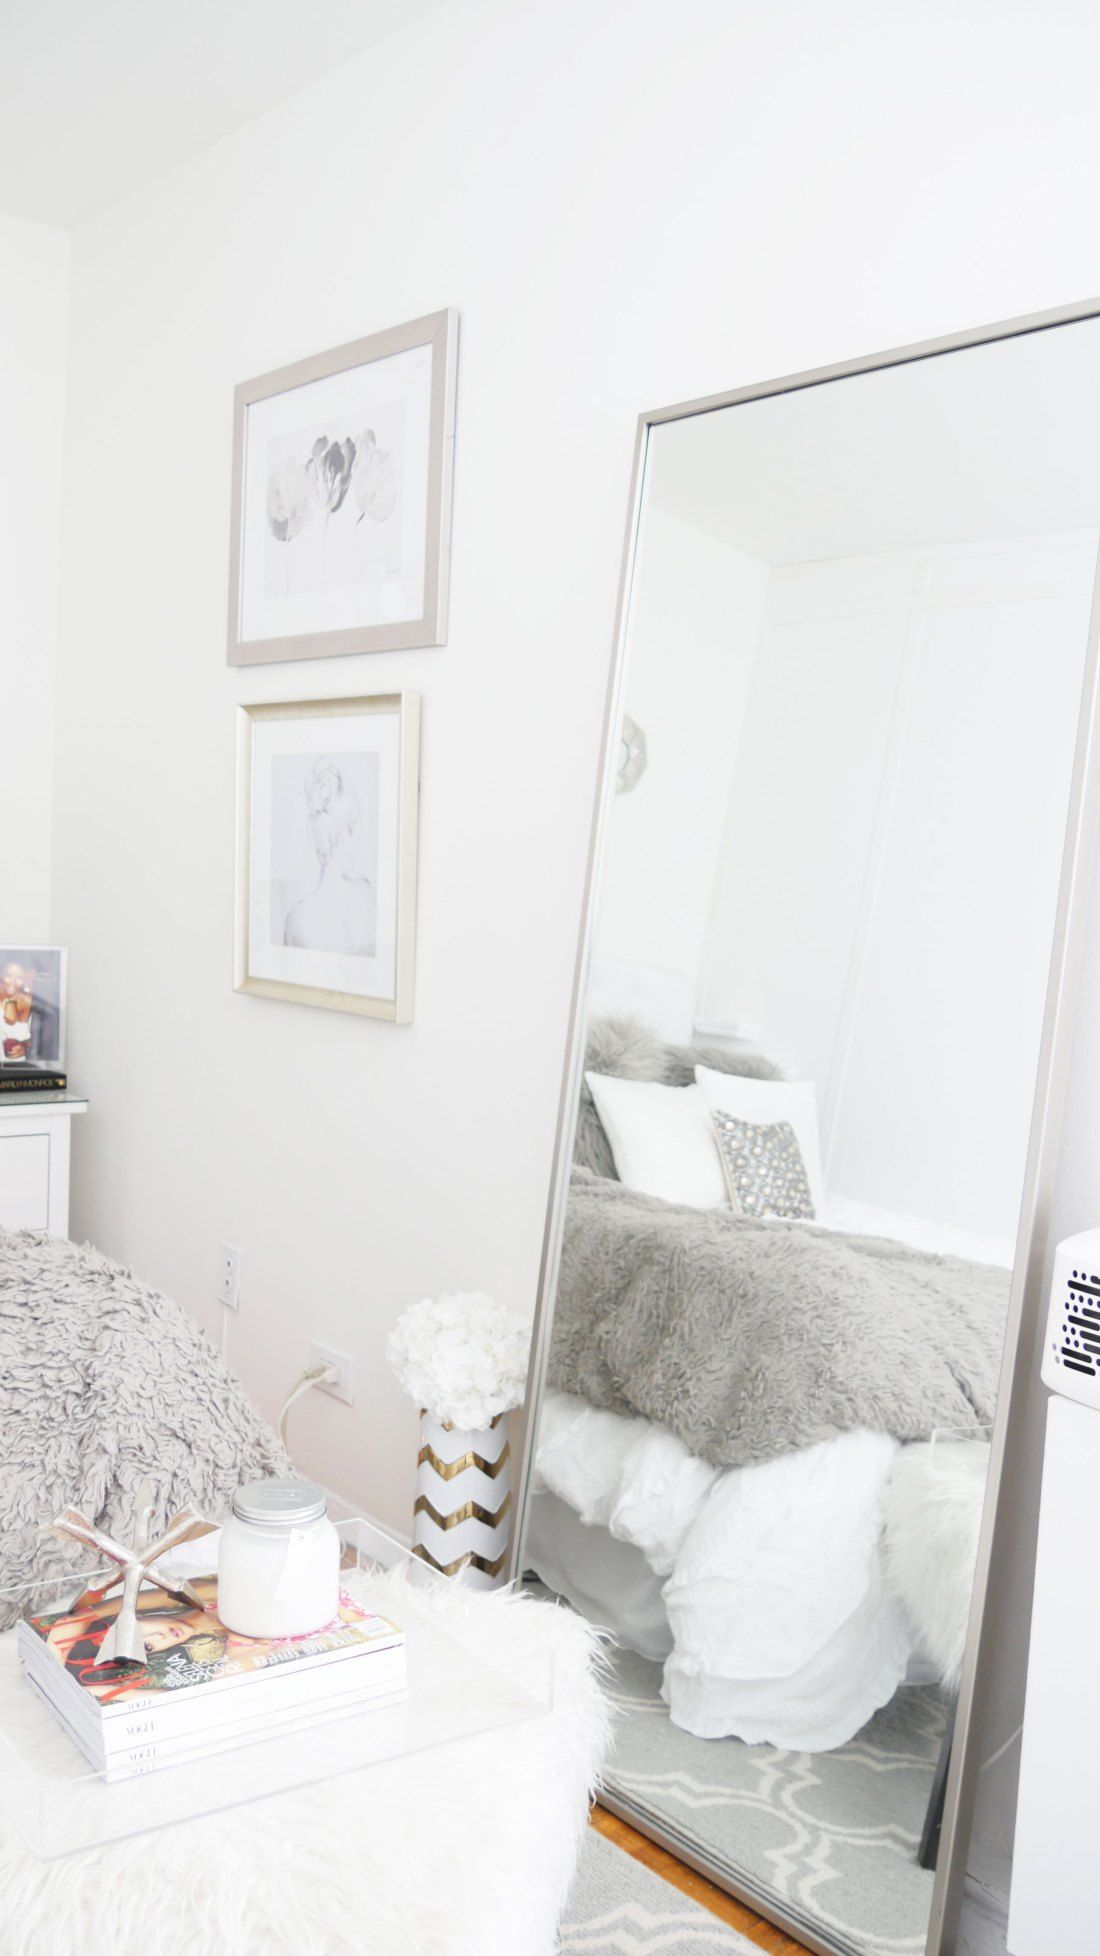 Quick Fixes to Turn a Tacky Bedroom Into an Oasis Studio